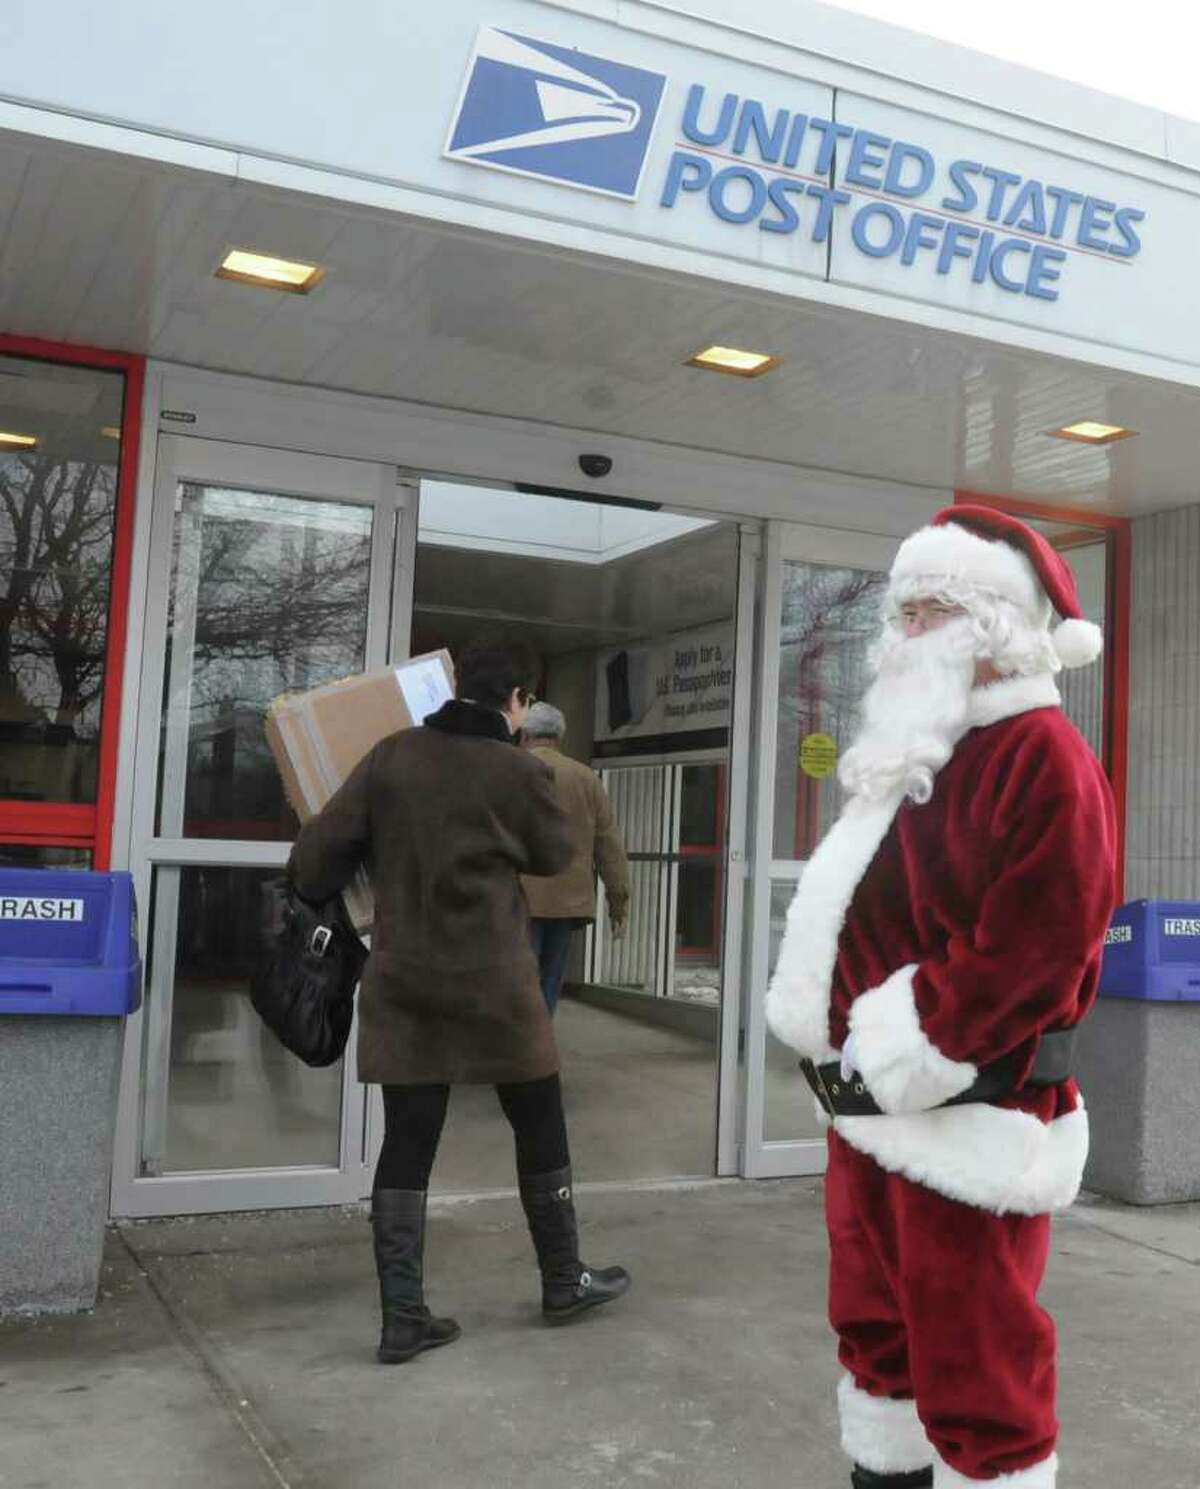 Santa Claus greets customers on the busiest mail day of the year at the U.S. Post Office on Karner Road in Colonie, NY, on December 20, 2010. (Lori Van Buren / Times Union)